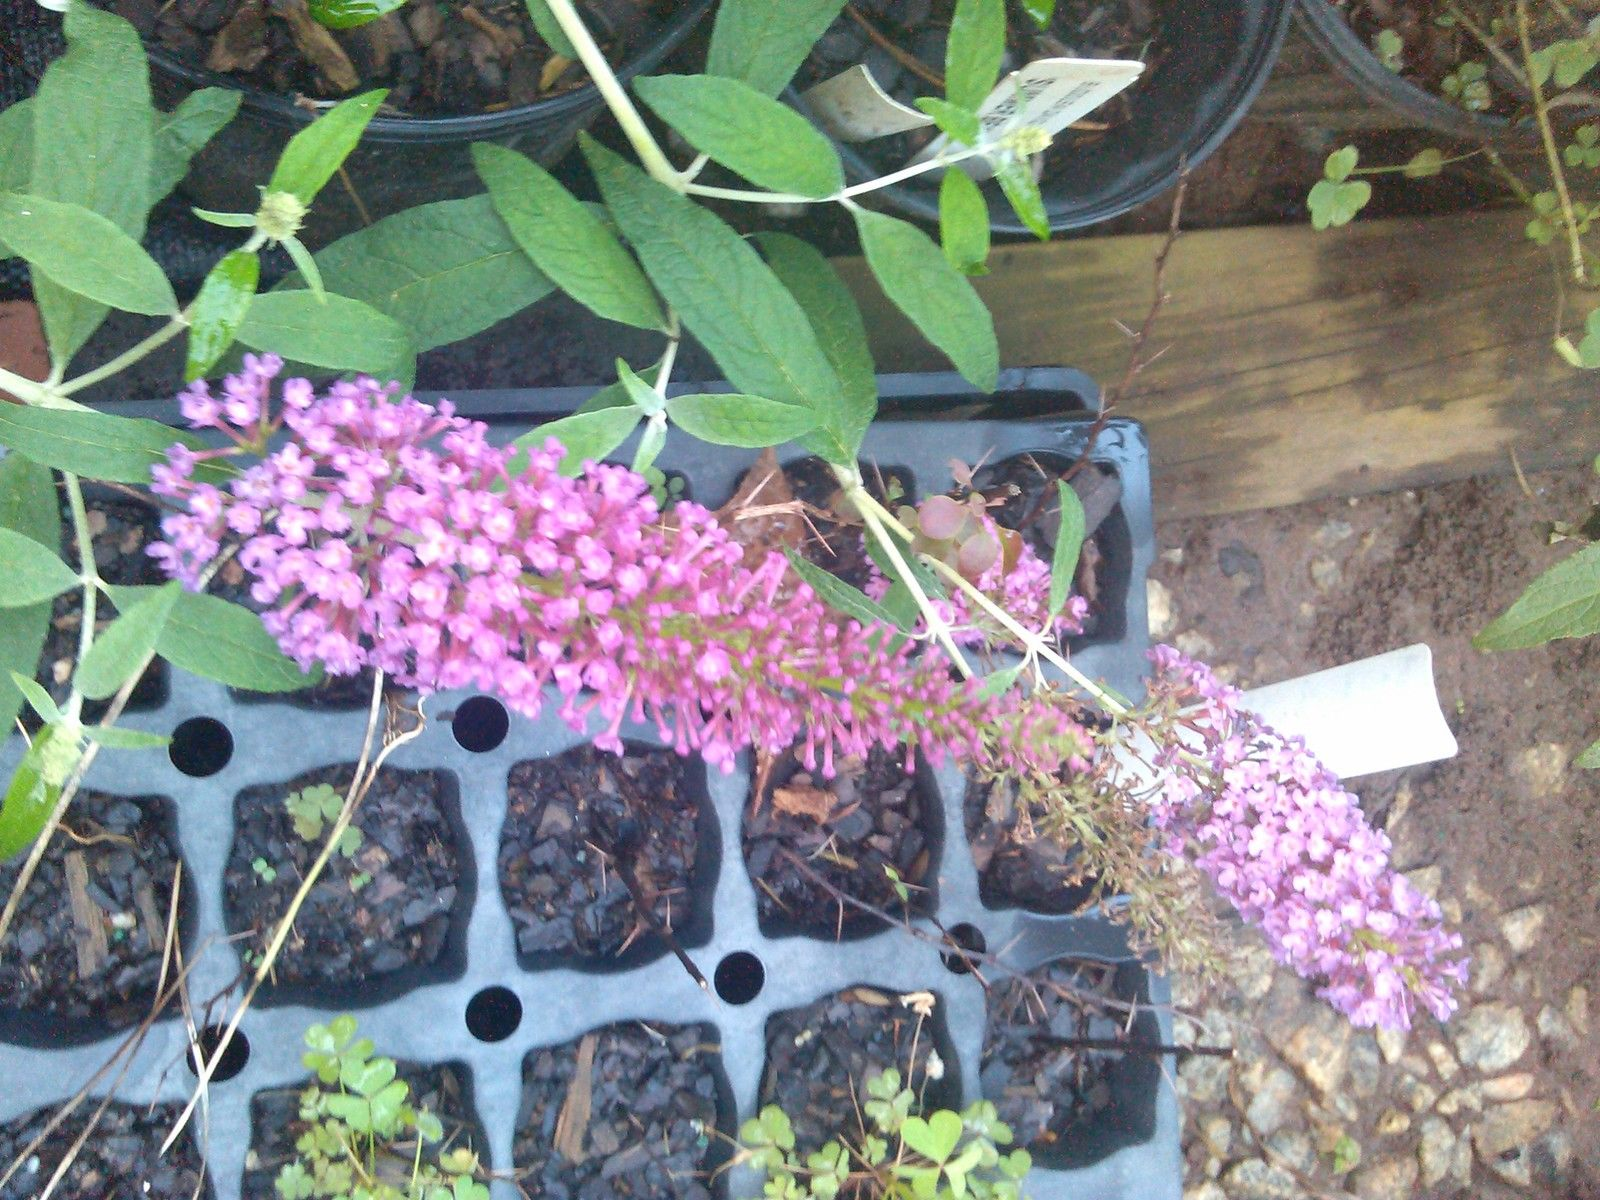 'SUMMER BEAUTY' Butterfly bush-lots of glorious rosy pink spikes of flowers